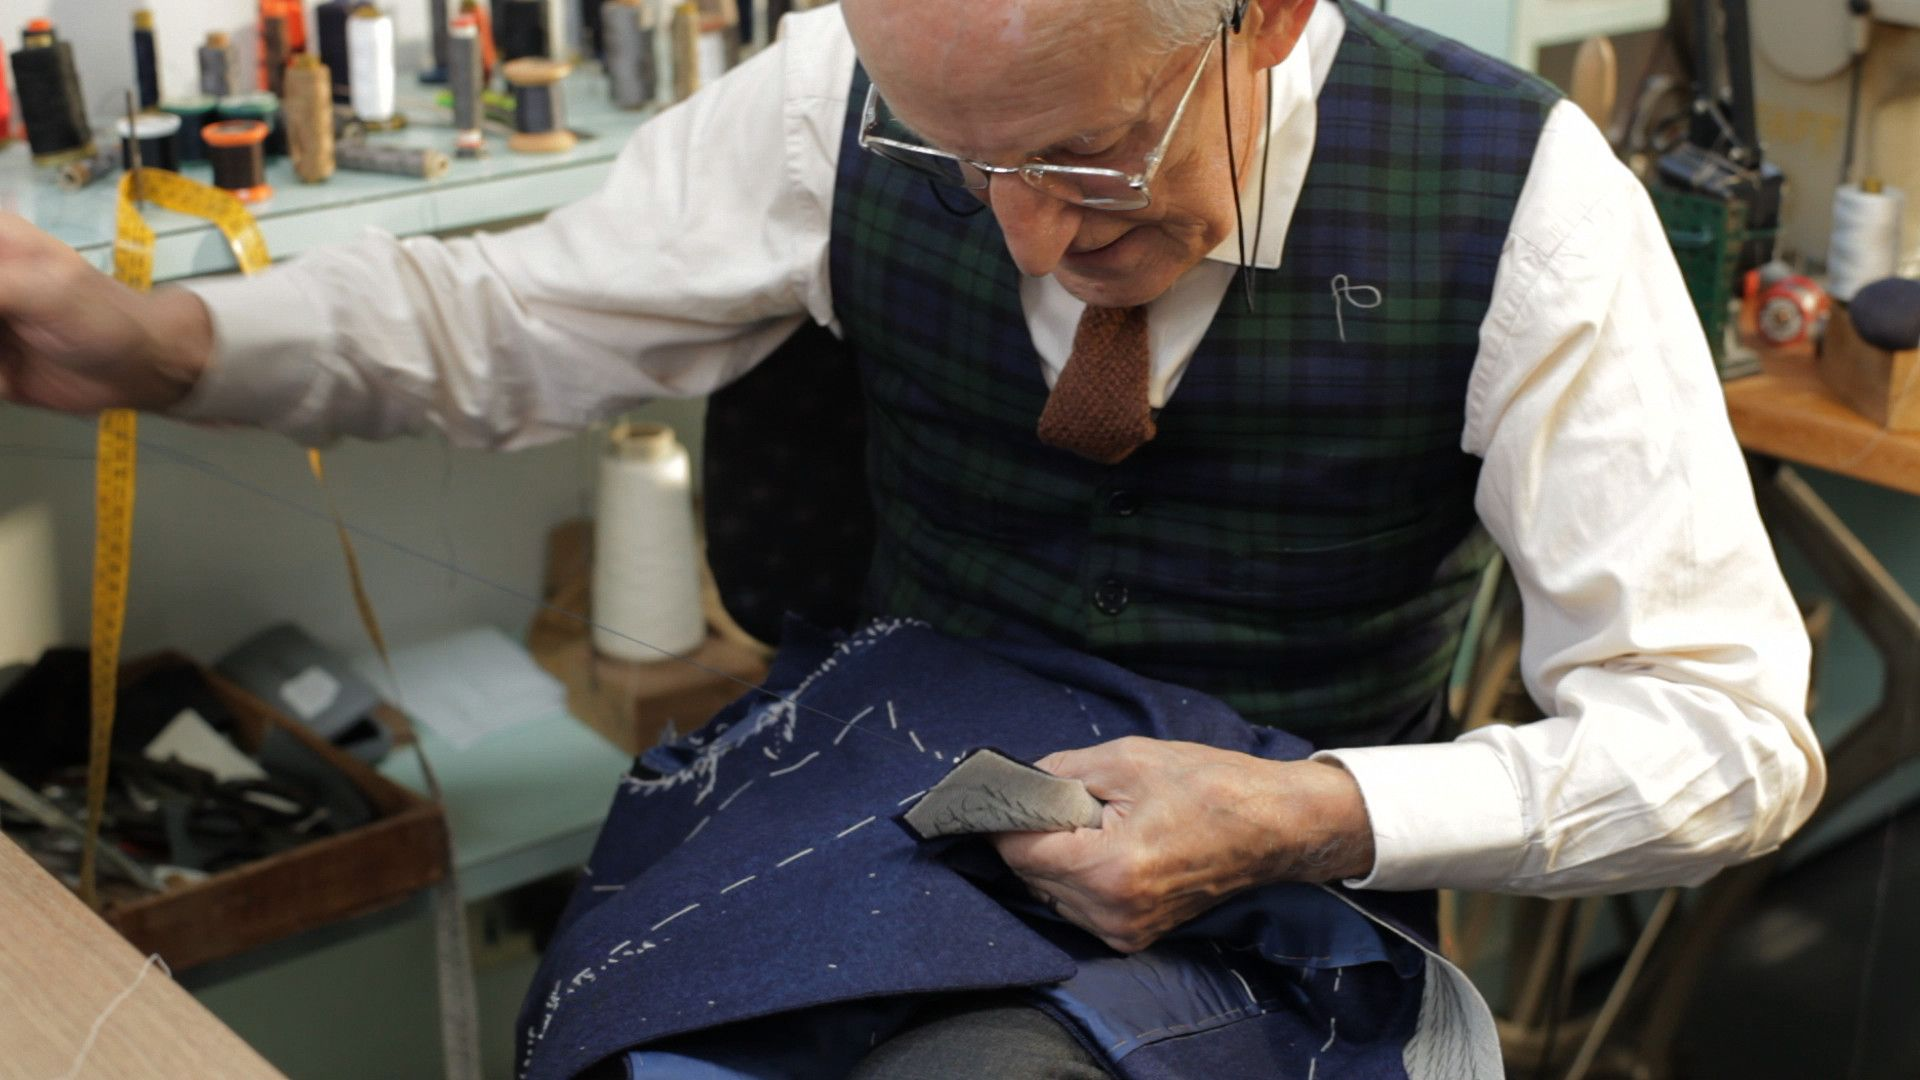 The master tailor Giovanni Barberis Organista bastes the suit.